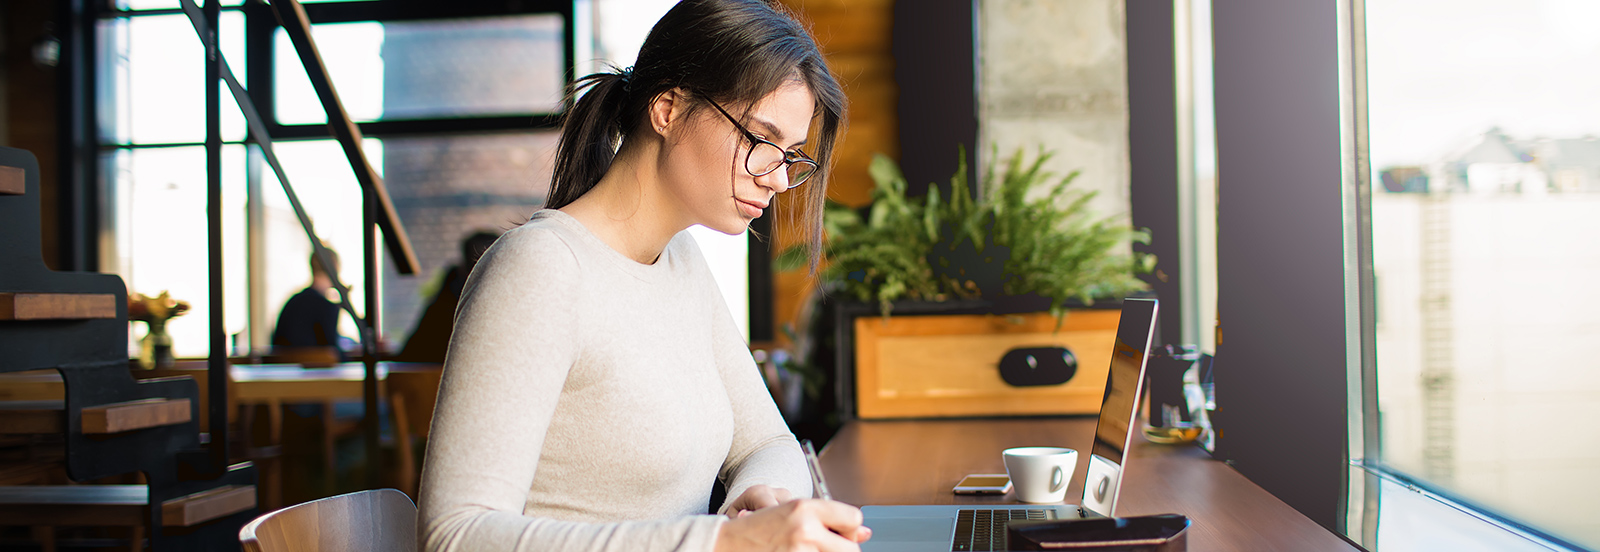 female working on laptop in coffee shop